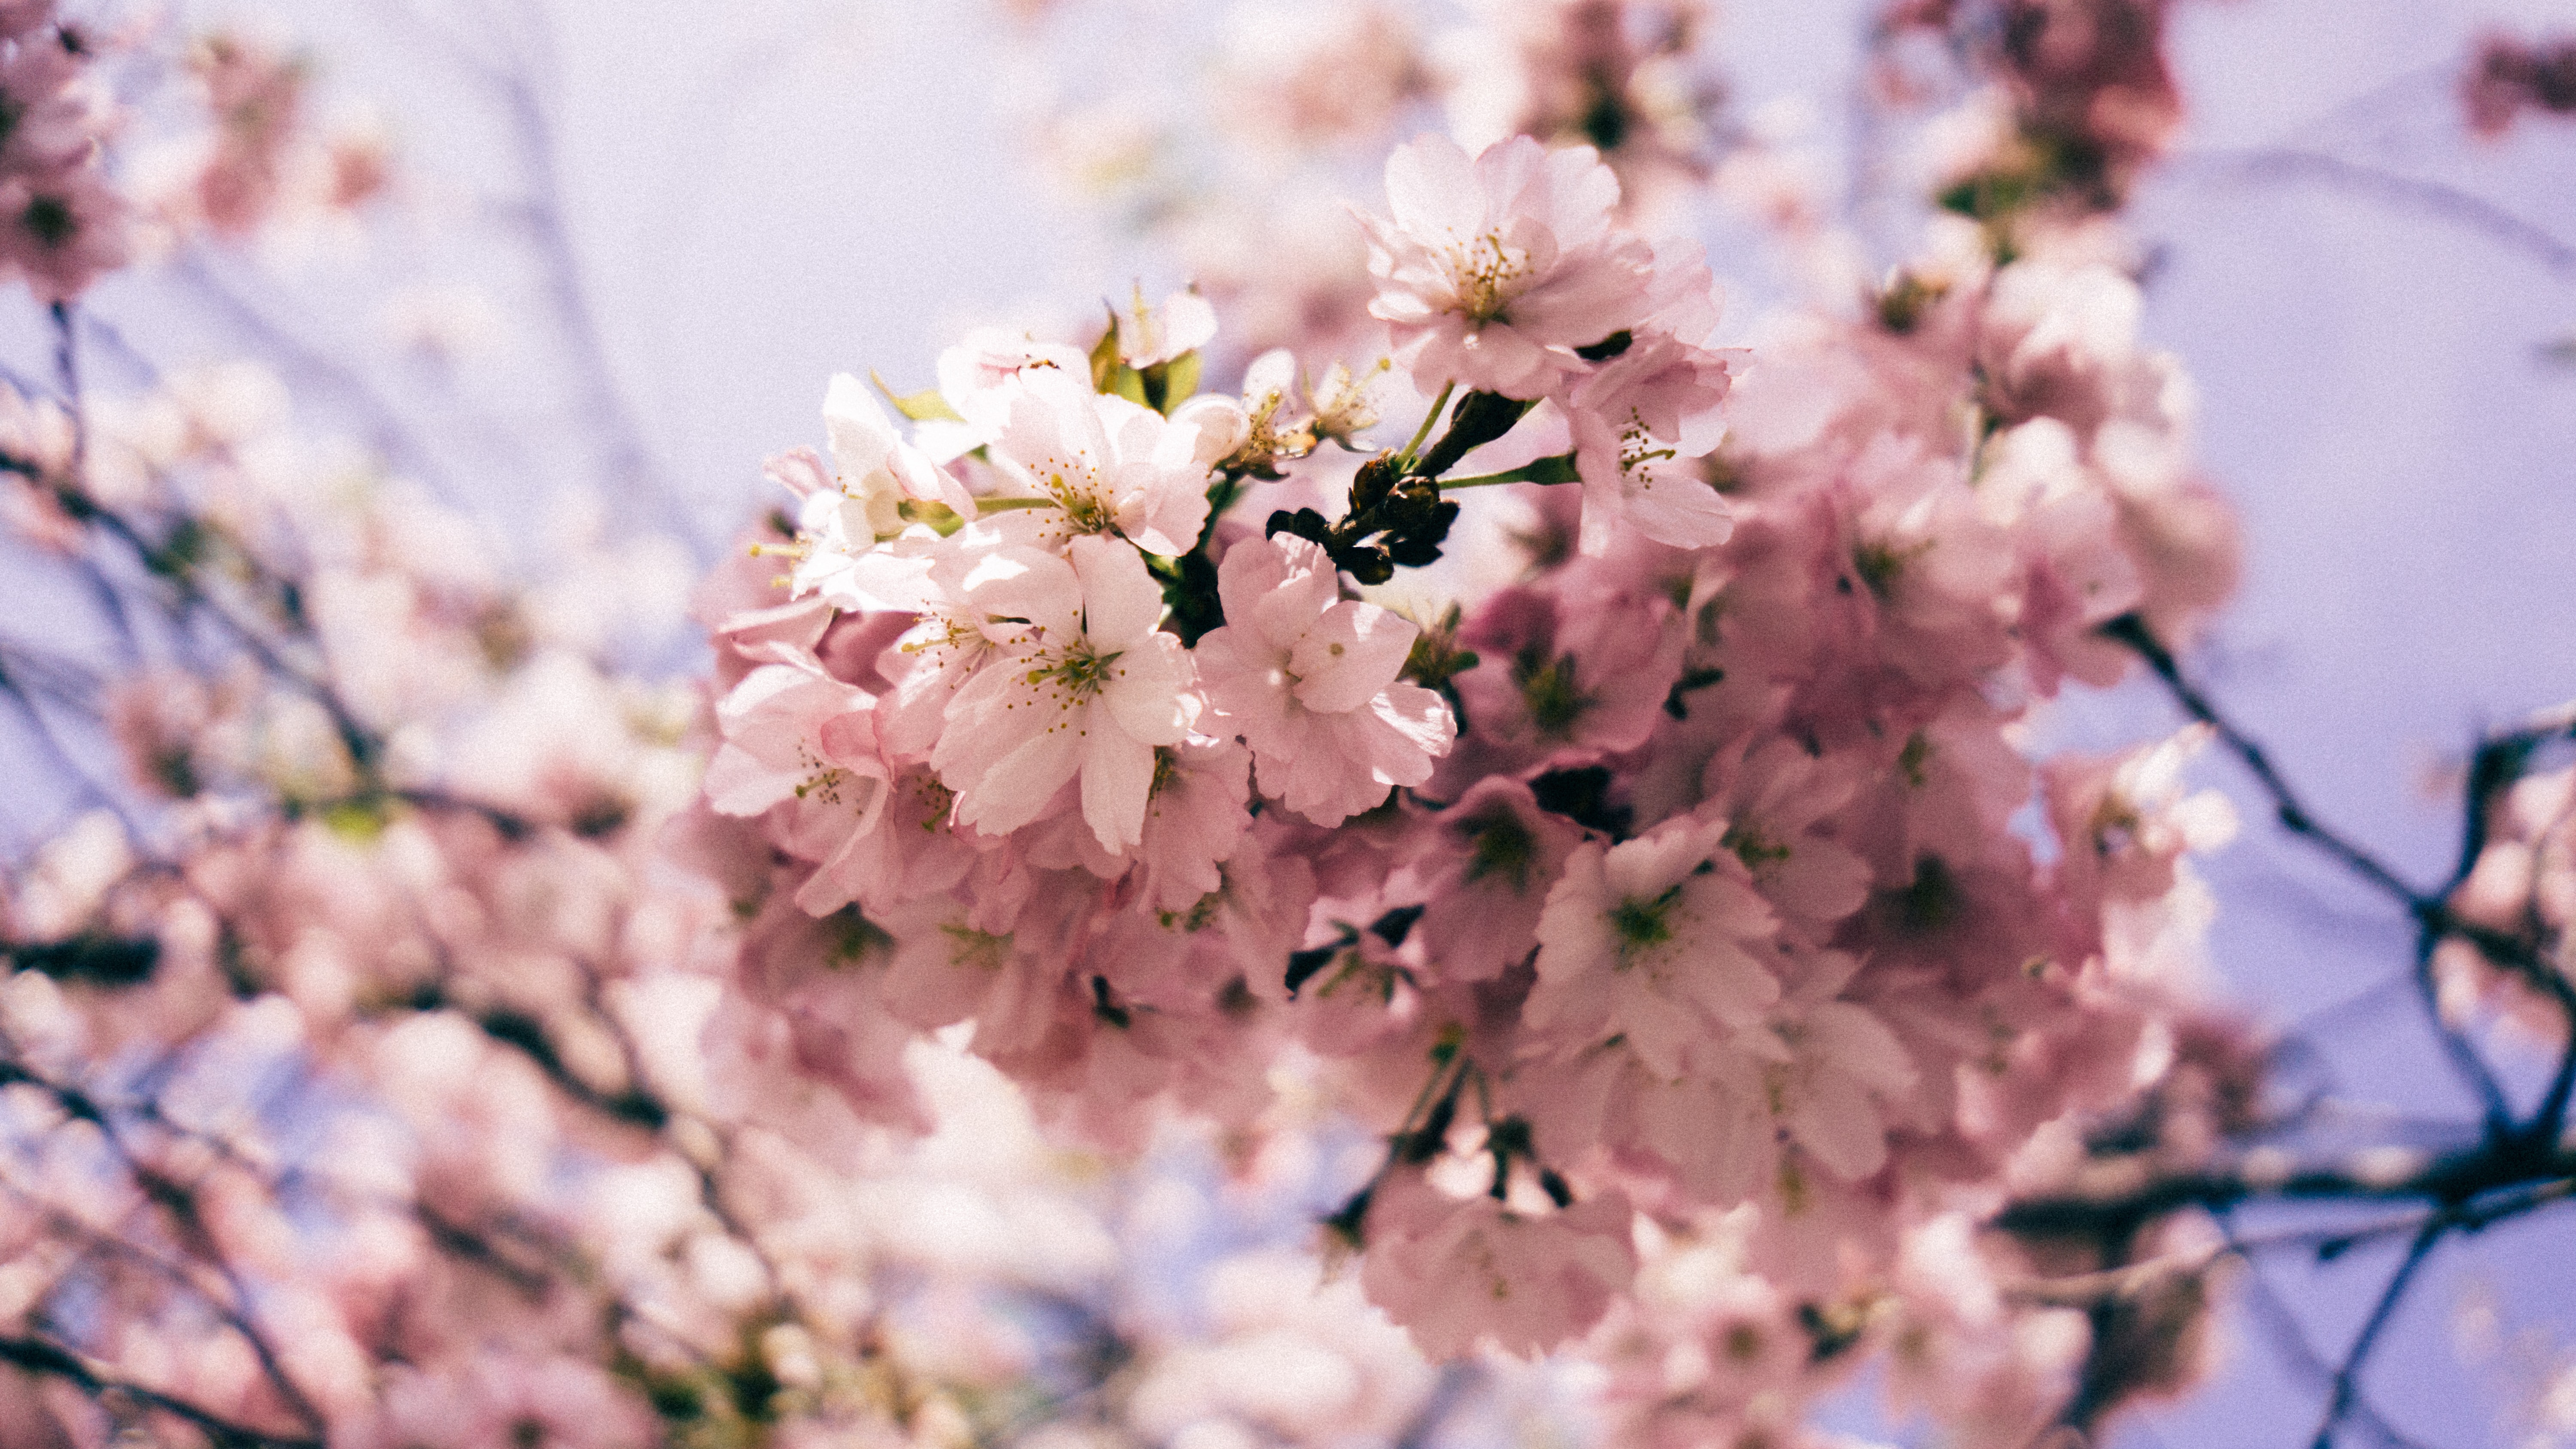 Close up of floral pink blossom on branch in Spring, Toronto